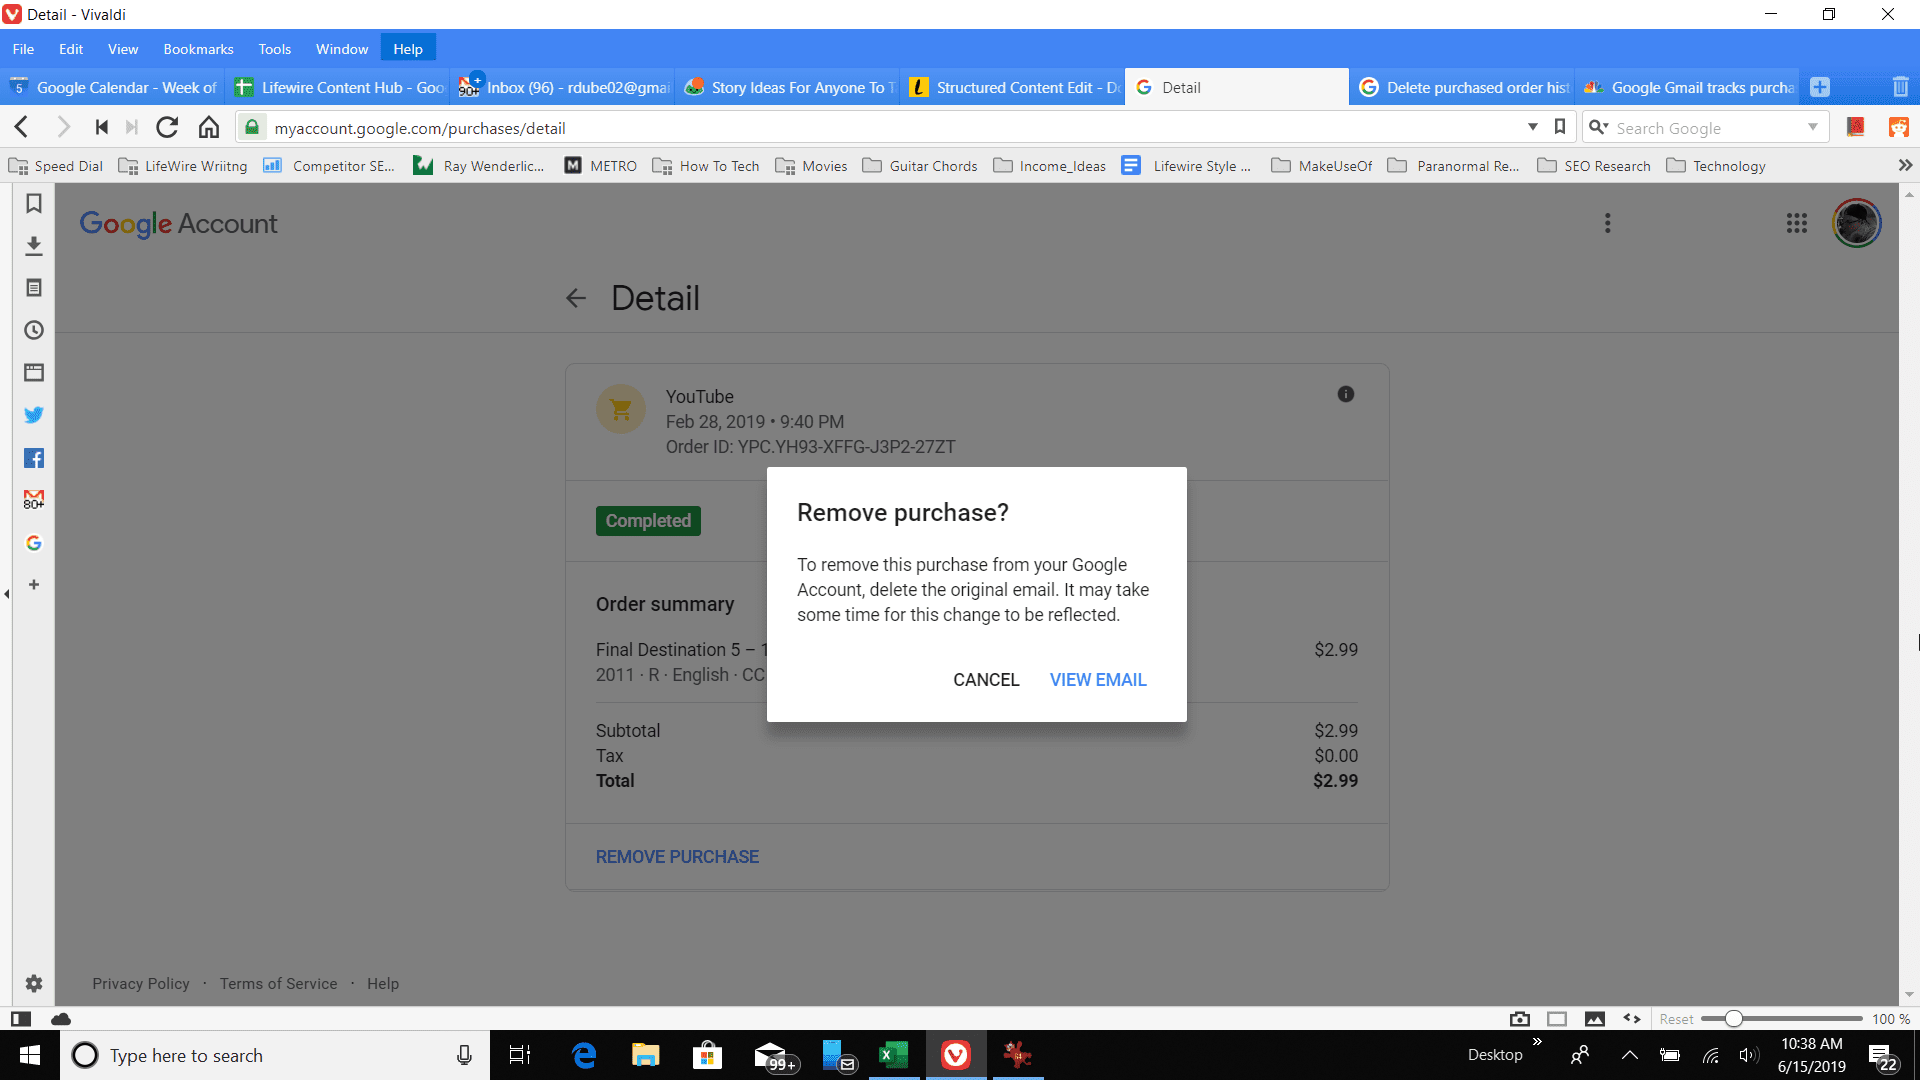 How To Delete Your Google Purchase History